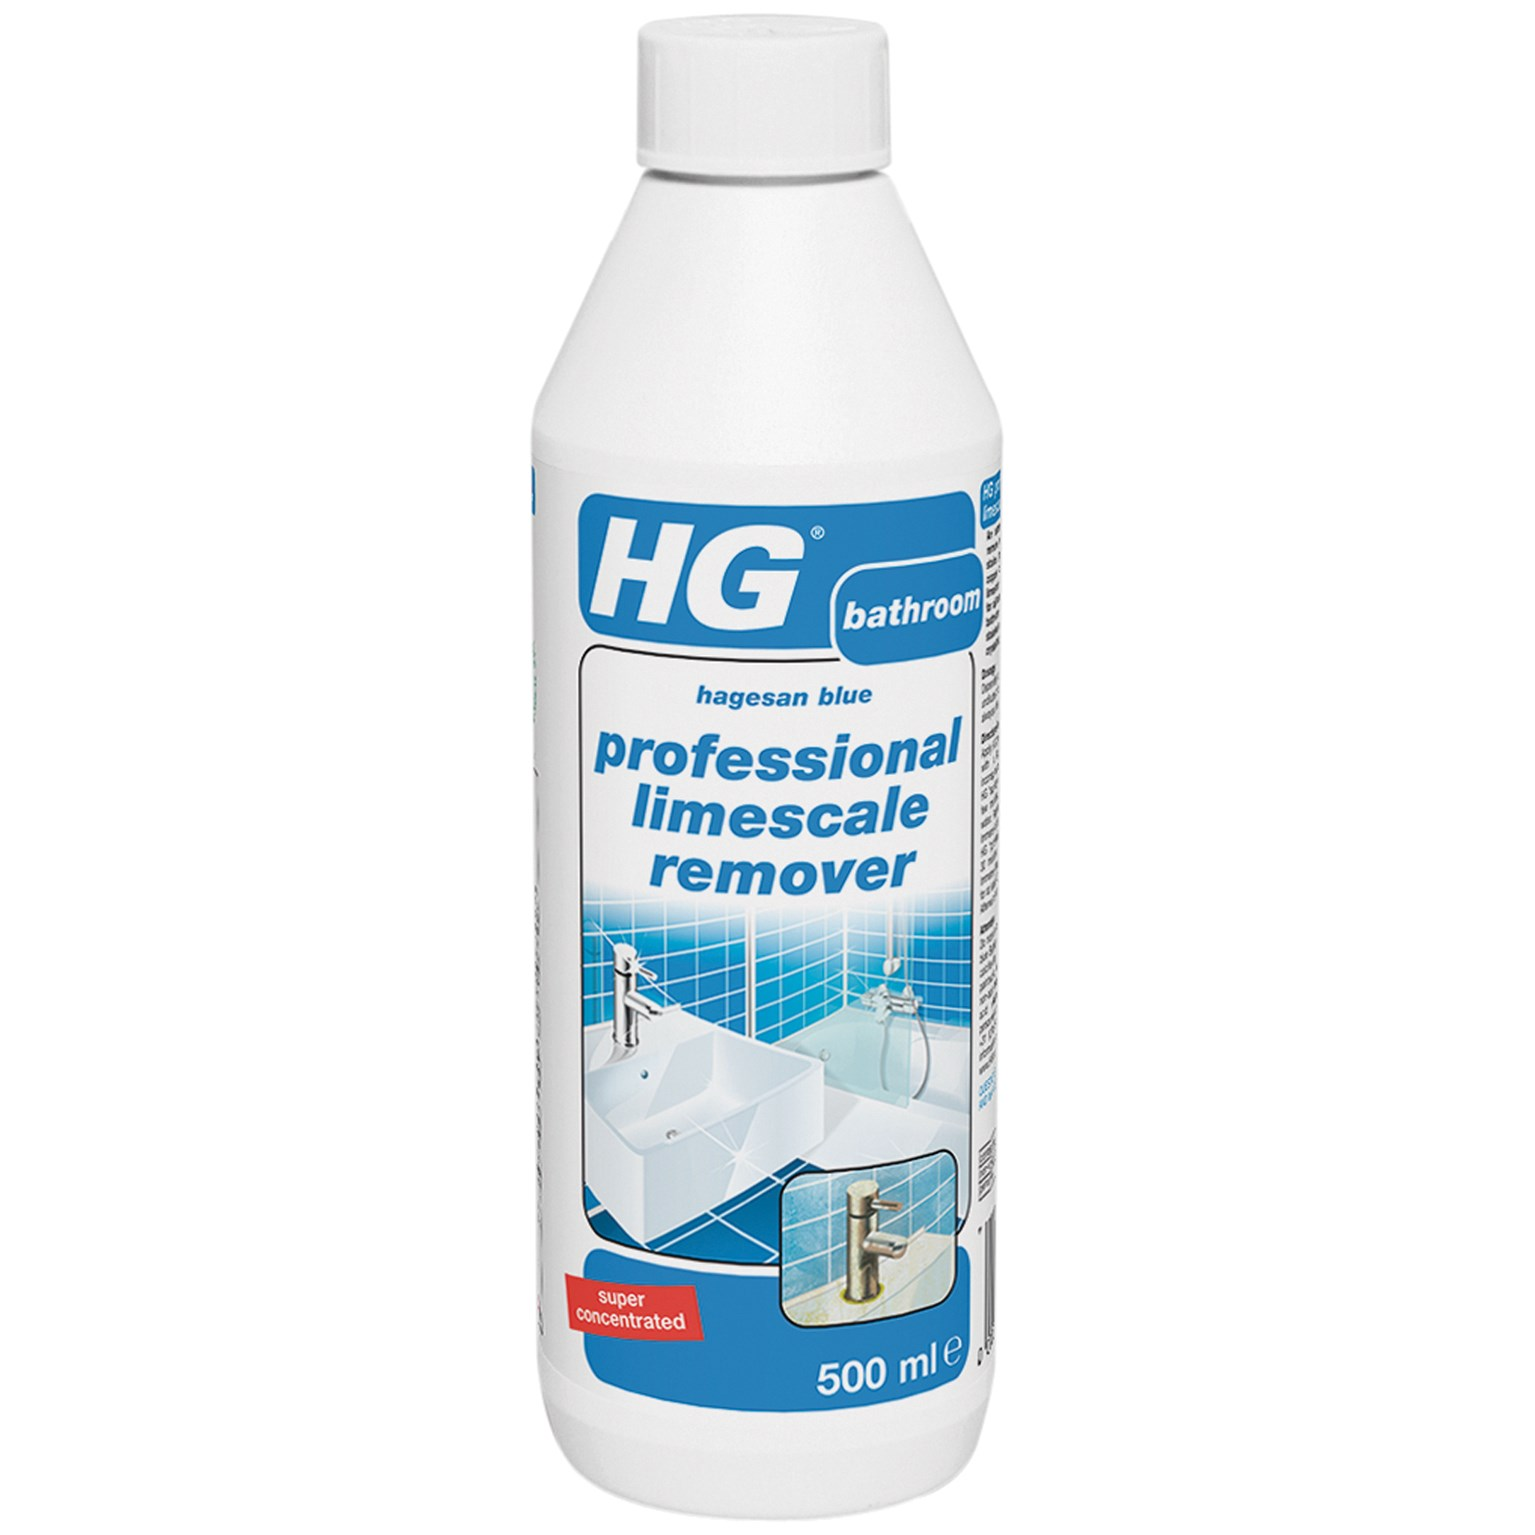 Hg professional limescale remover 500ml home cleaning for Sanivac concentrate bathroom cleaner and lime remover